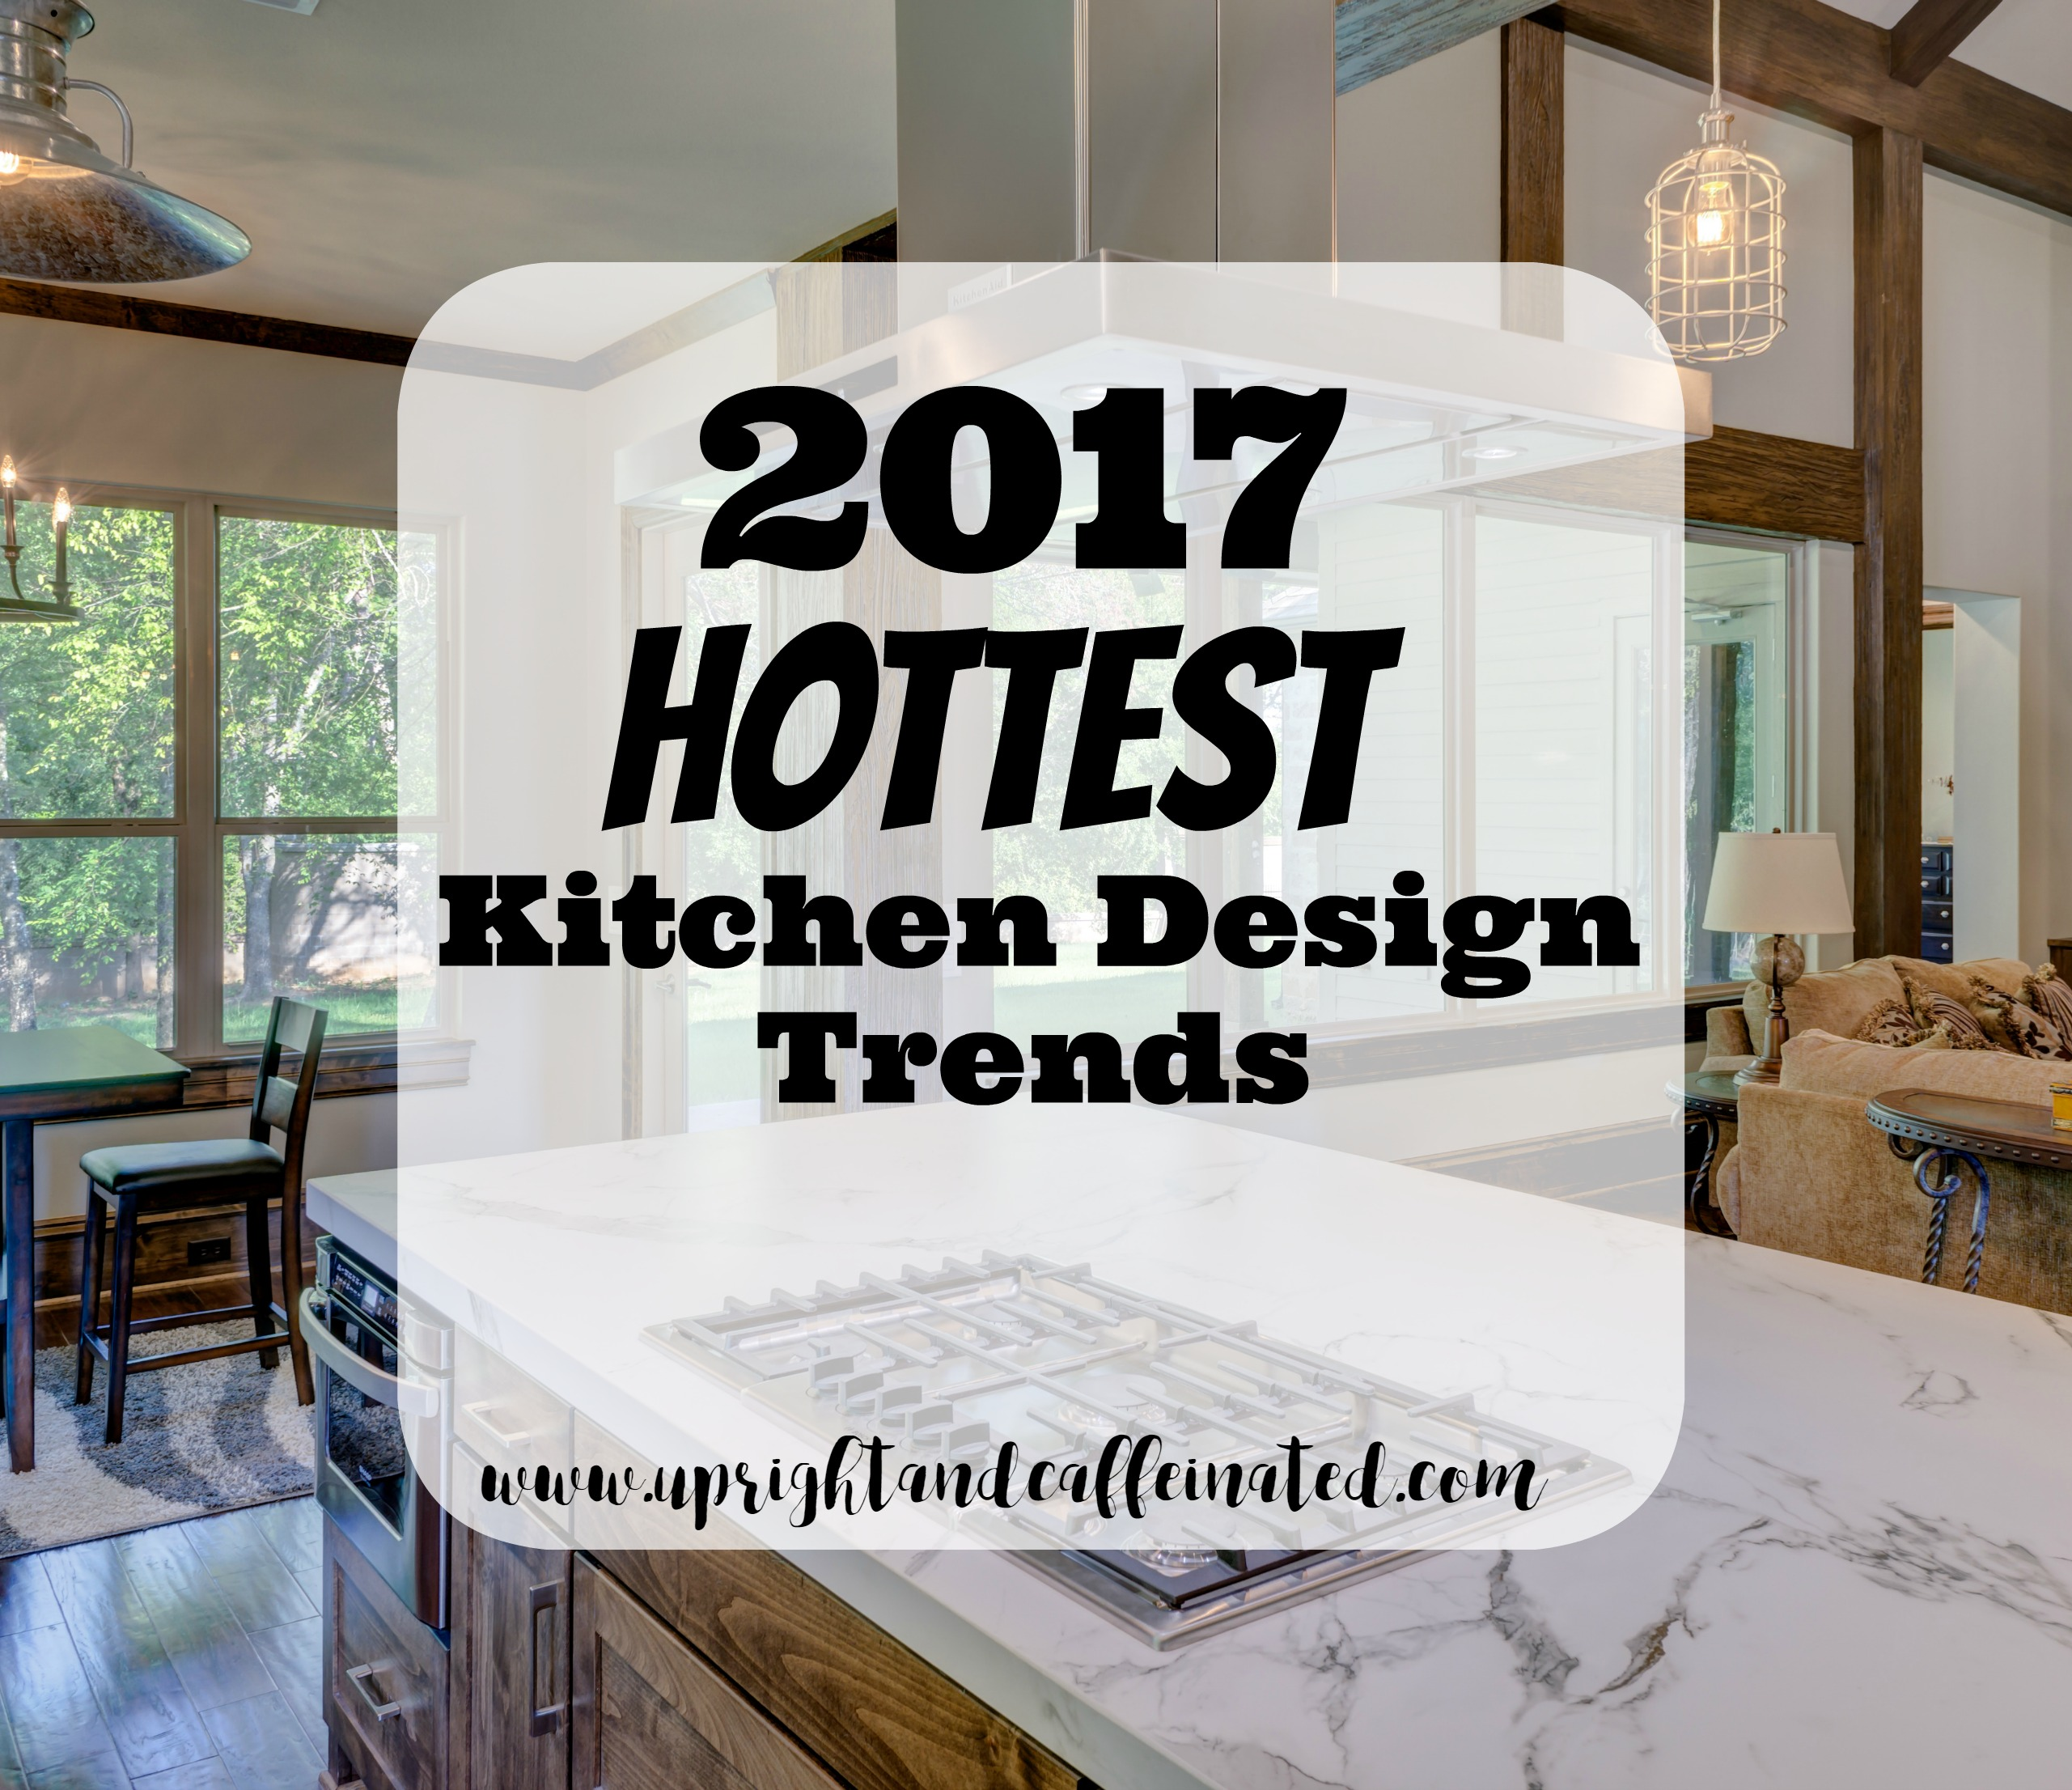 2017 Hottest Kitchen Trends Upright and Caffeinated